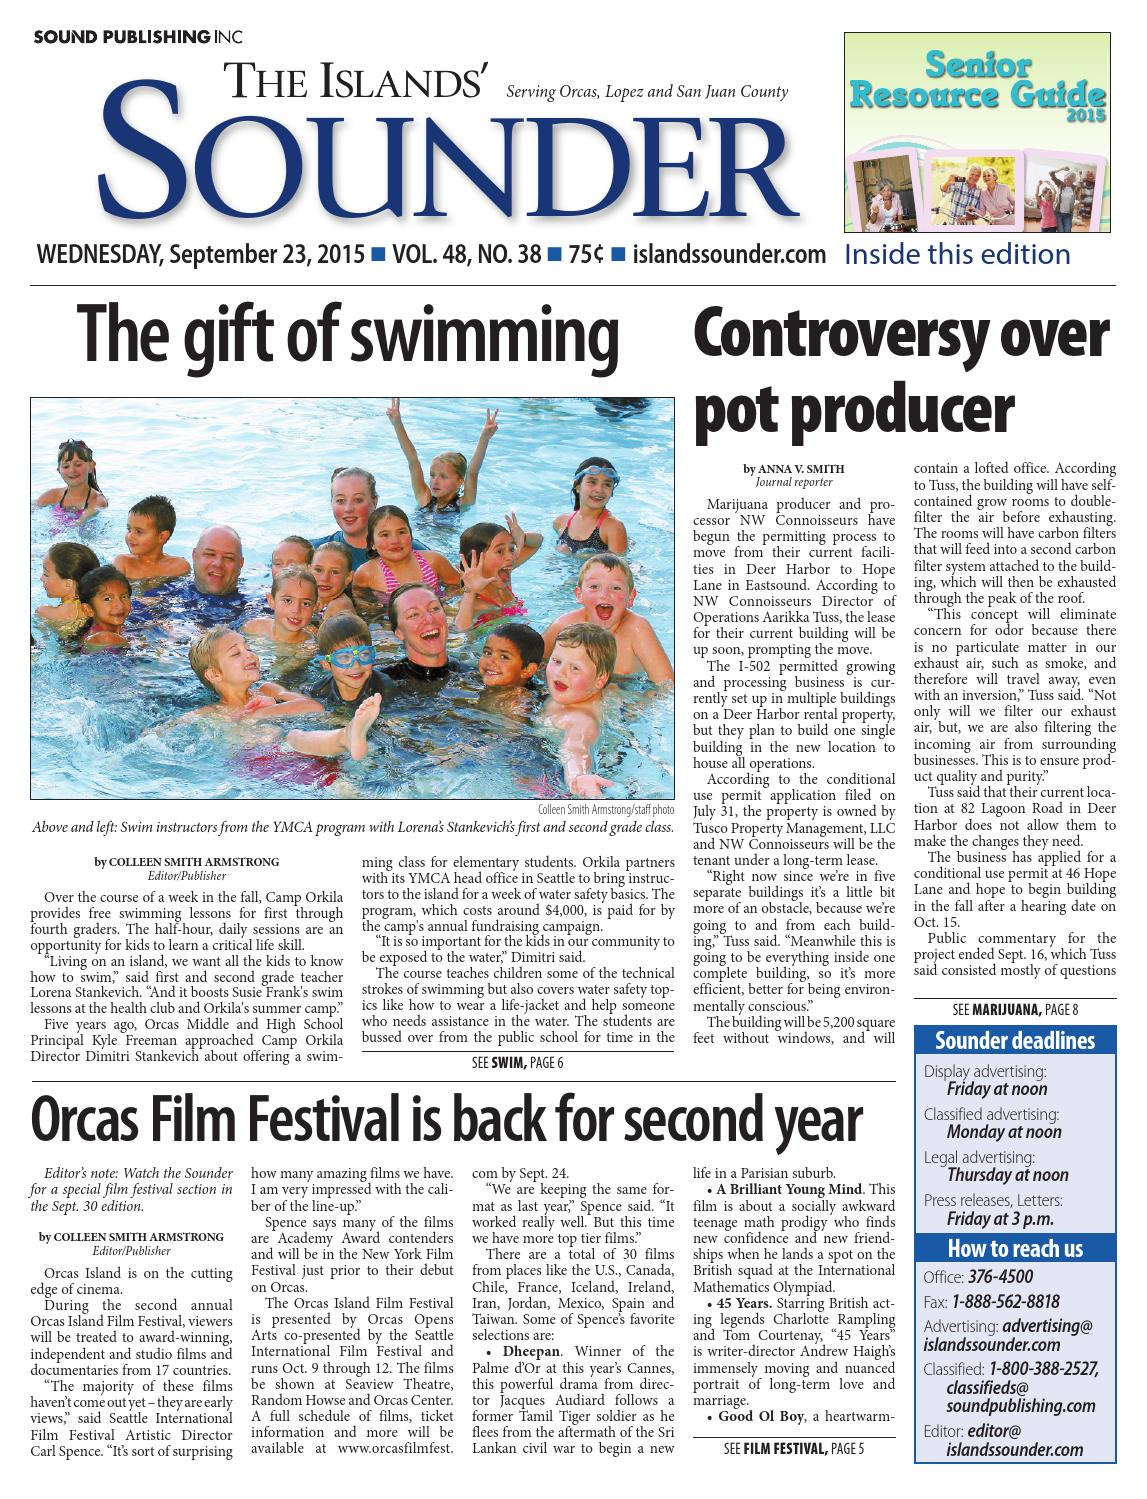 Islands' Sounder, September 23, 2015 by Sound Publishing - issuu